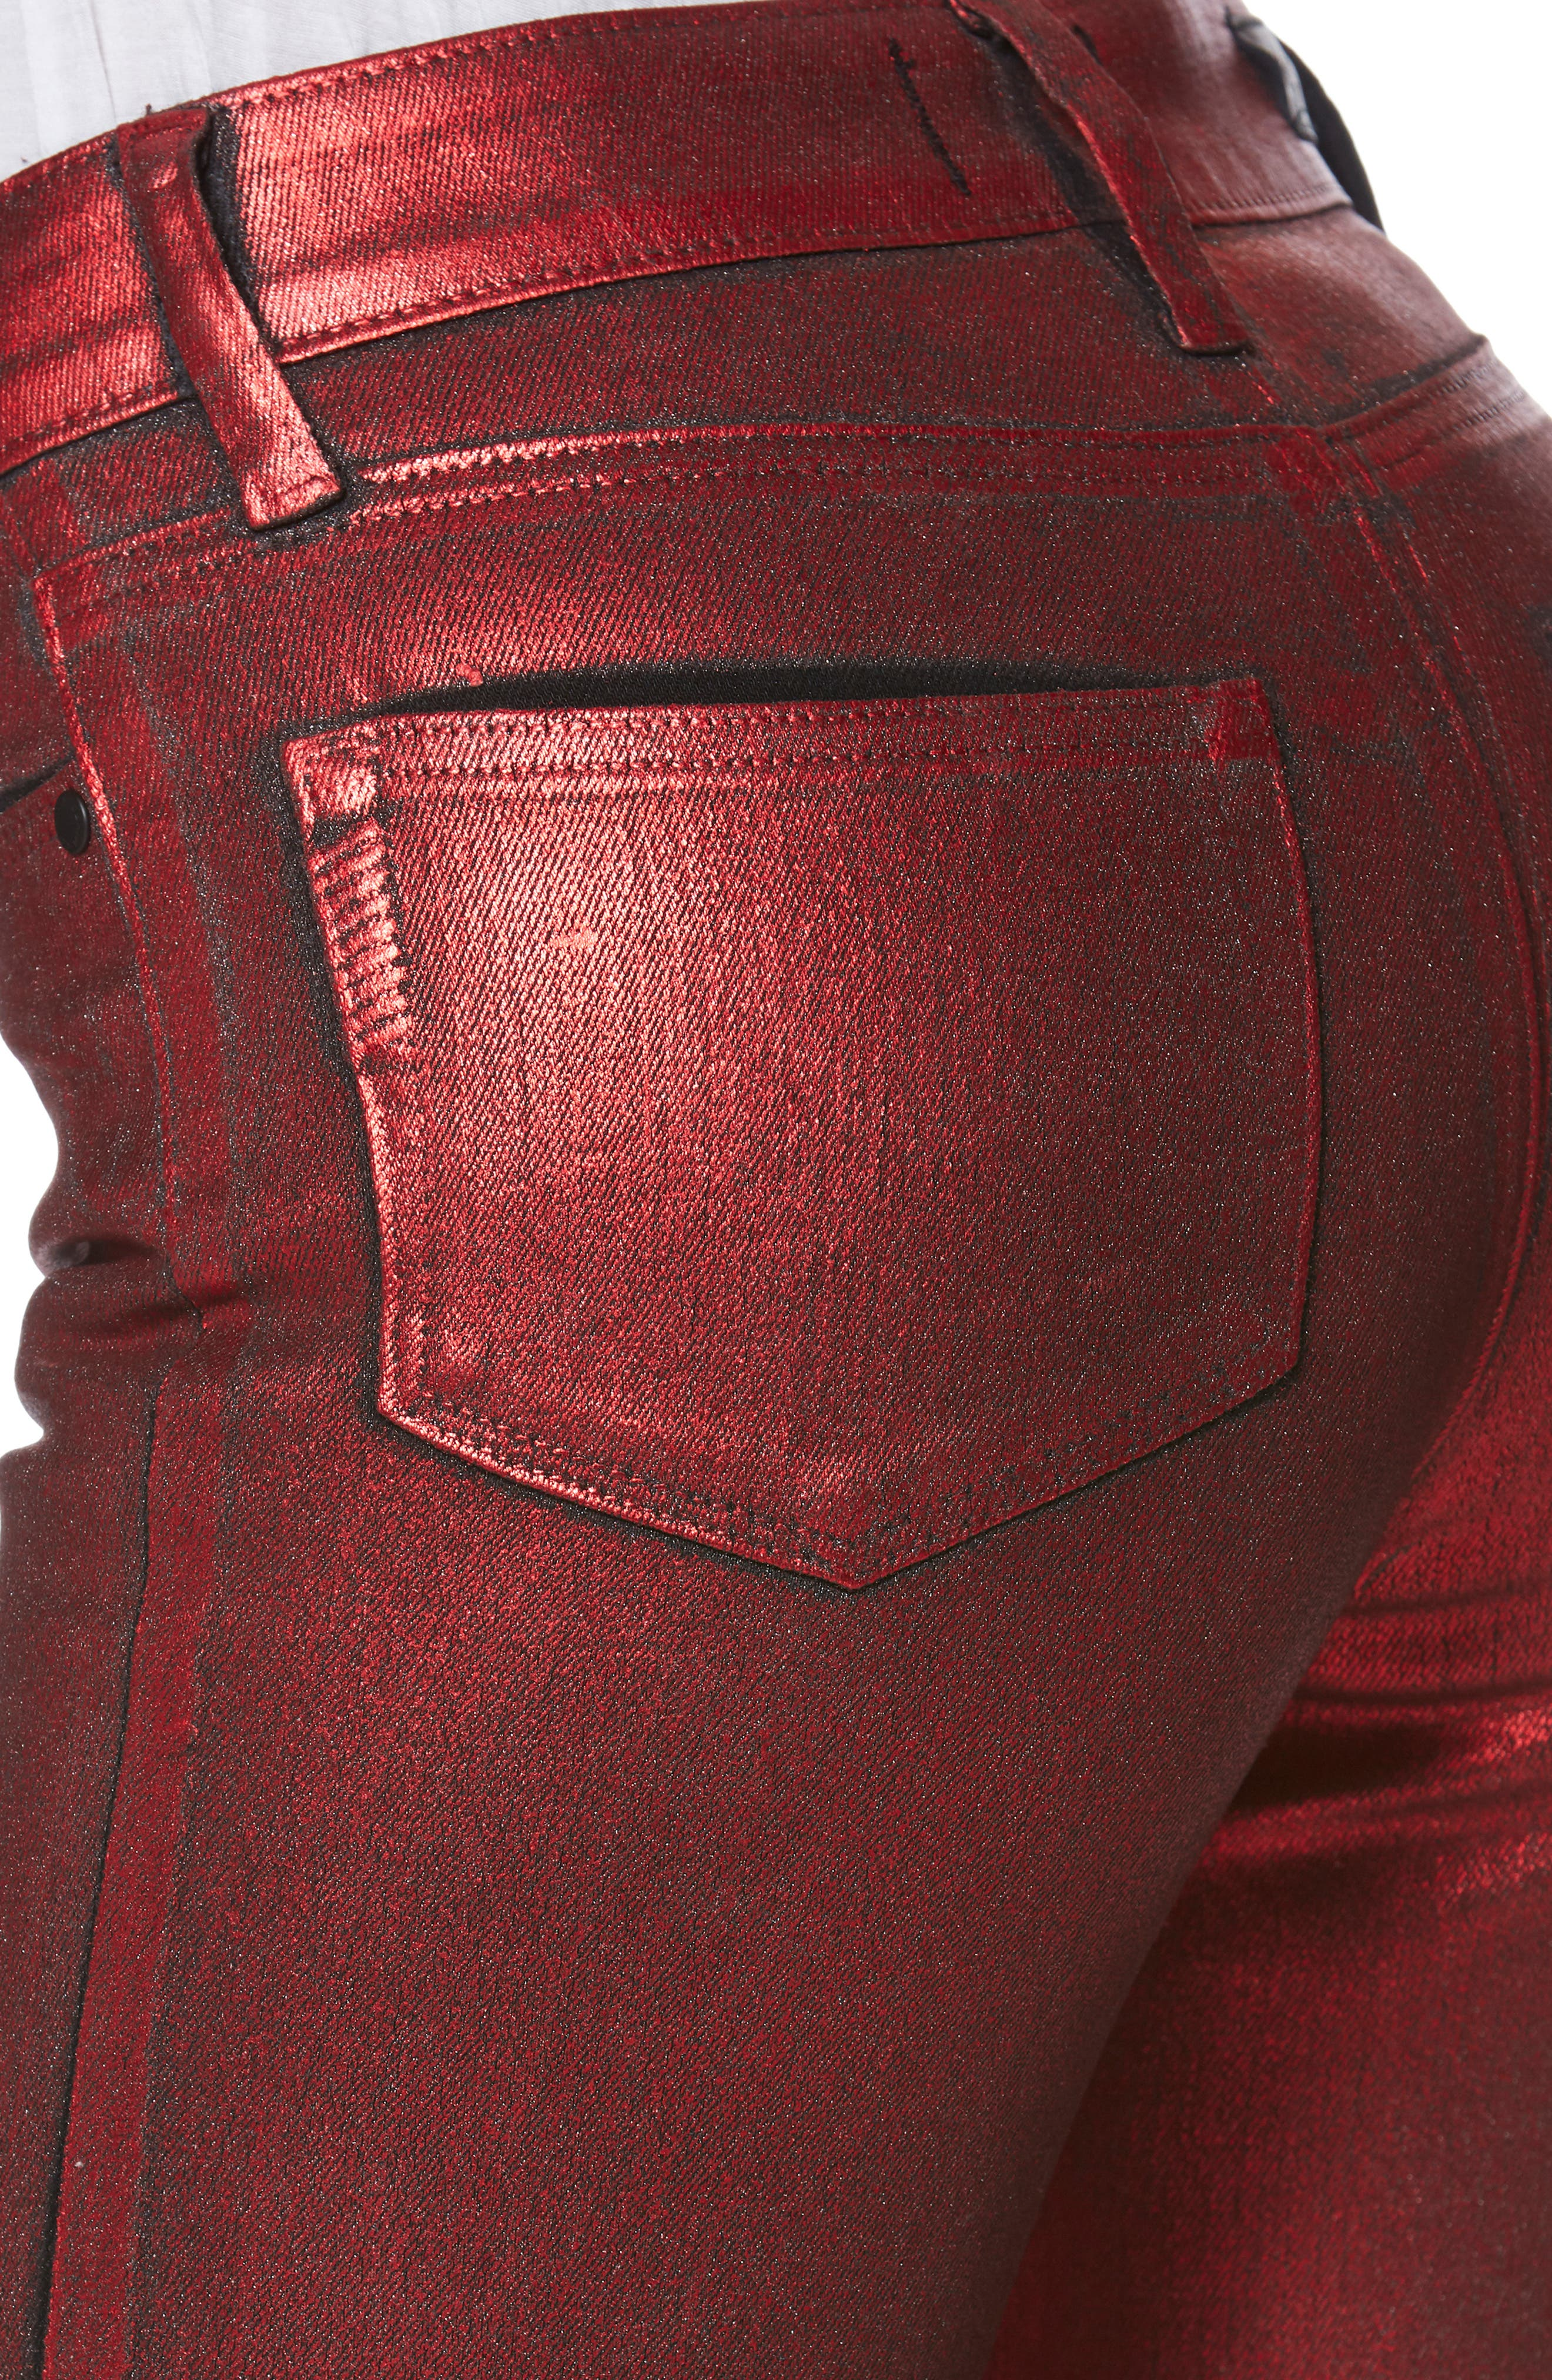 Hoxton High Waist Ultra Skinny Jeans,                             Alternate thumbnail 4, color,                             RED GALAXY COATING